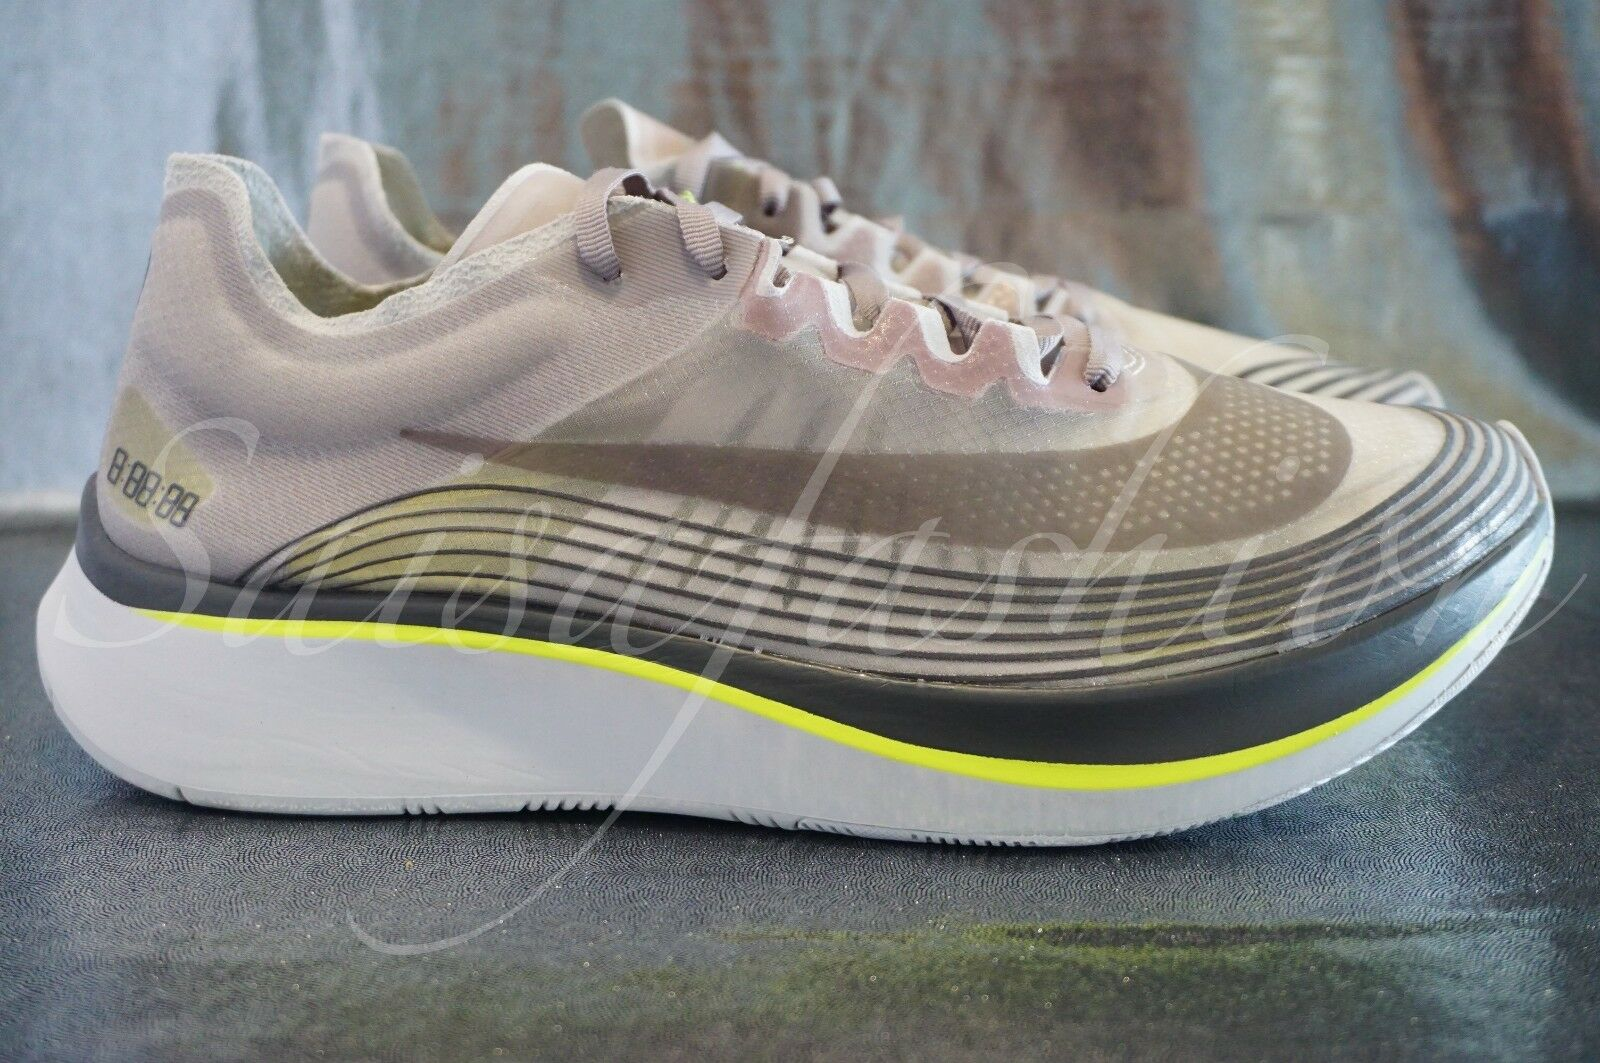 8ac37966b1e8 NikeLab Zoom Fly SP Sepia Stone Aa3172-201 QS Men s Sz 8.5 for sale ...